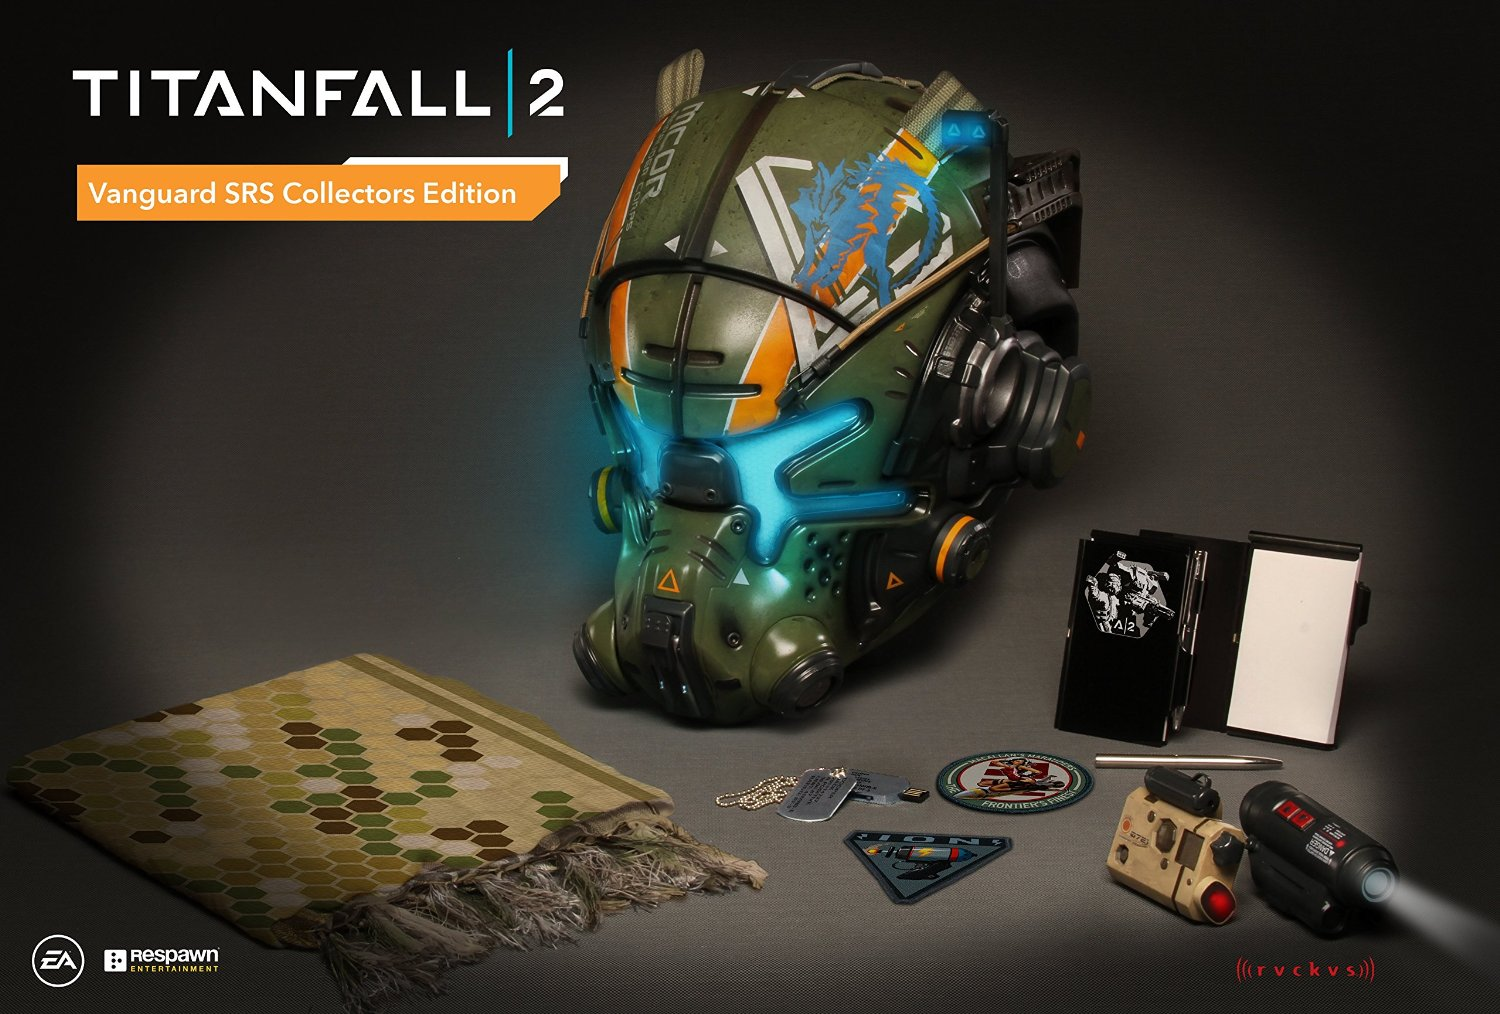 Titanfall 2 Vanguard collector edition